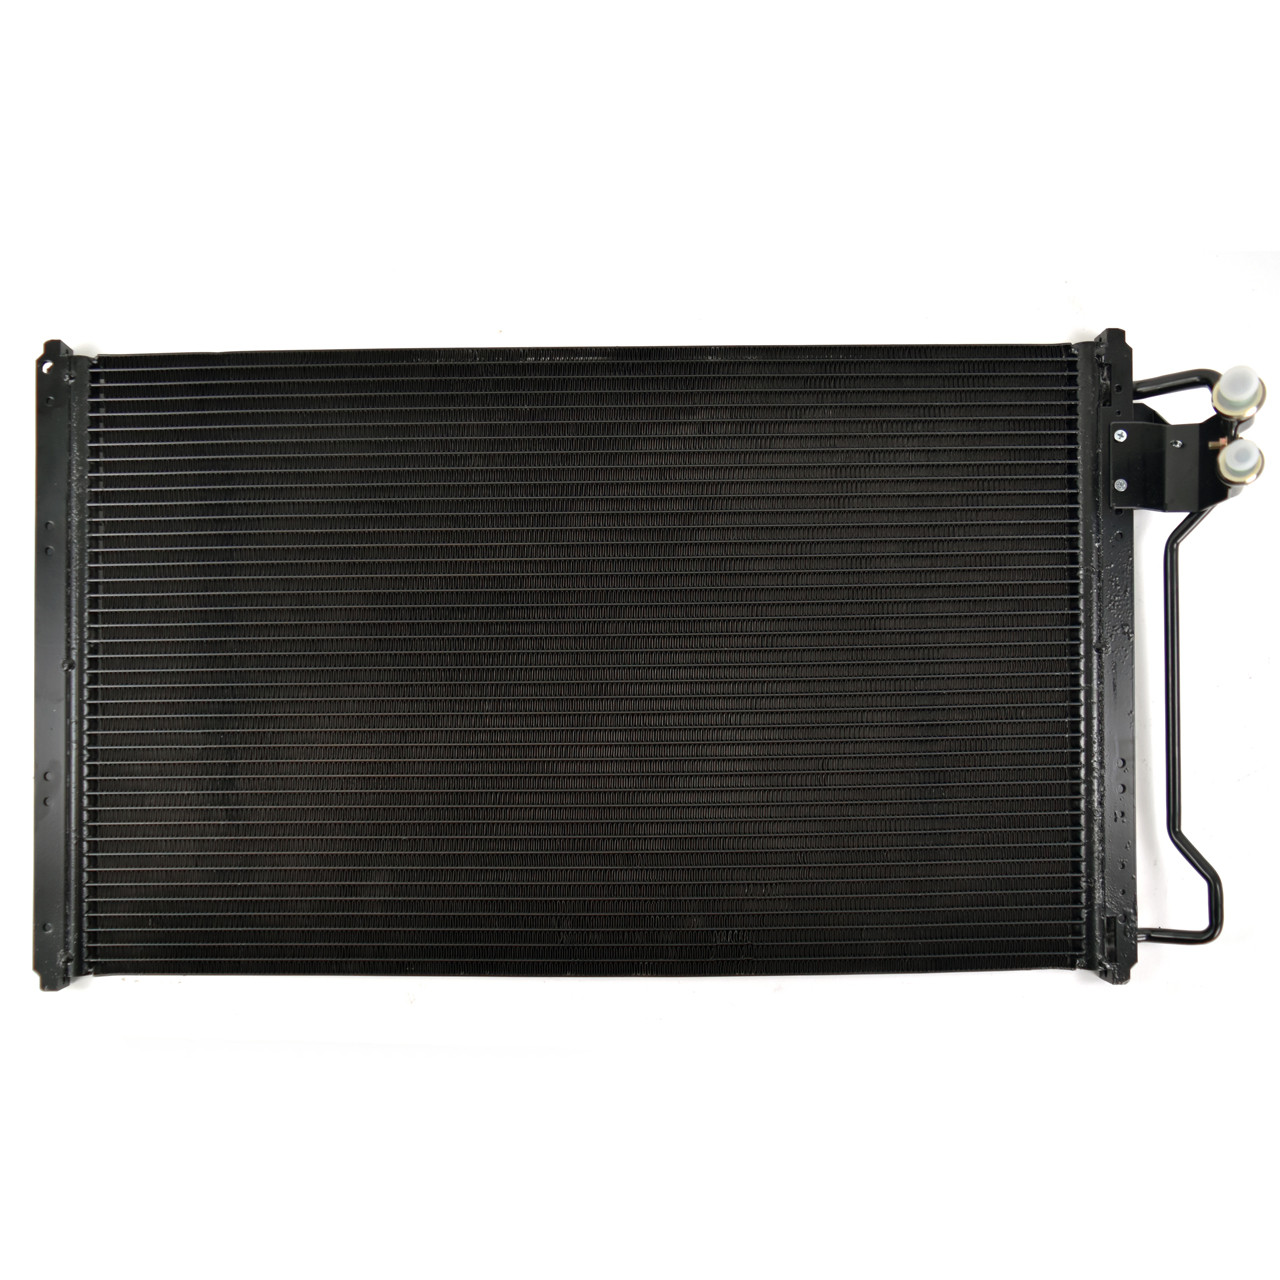 A/C Air Conditioning Condenser for 3.8 V6 or 4.6 V8 [FM-ACC11]